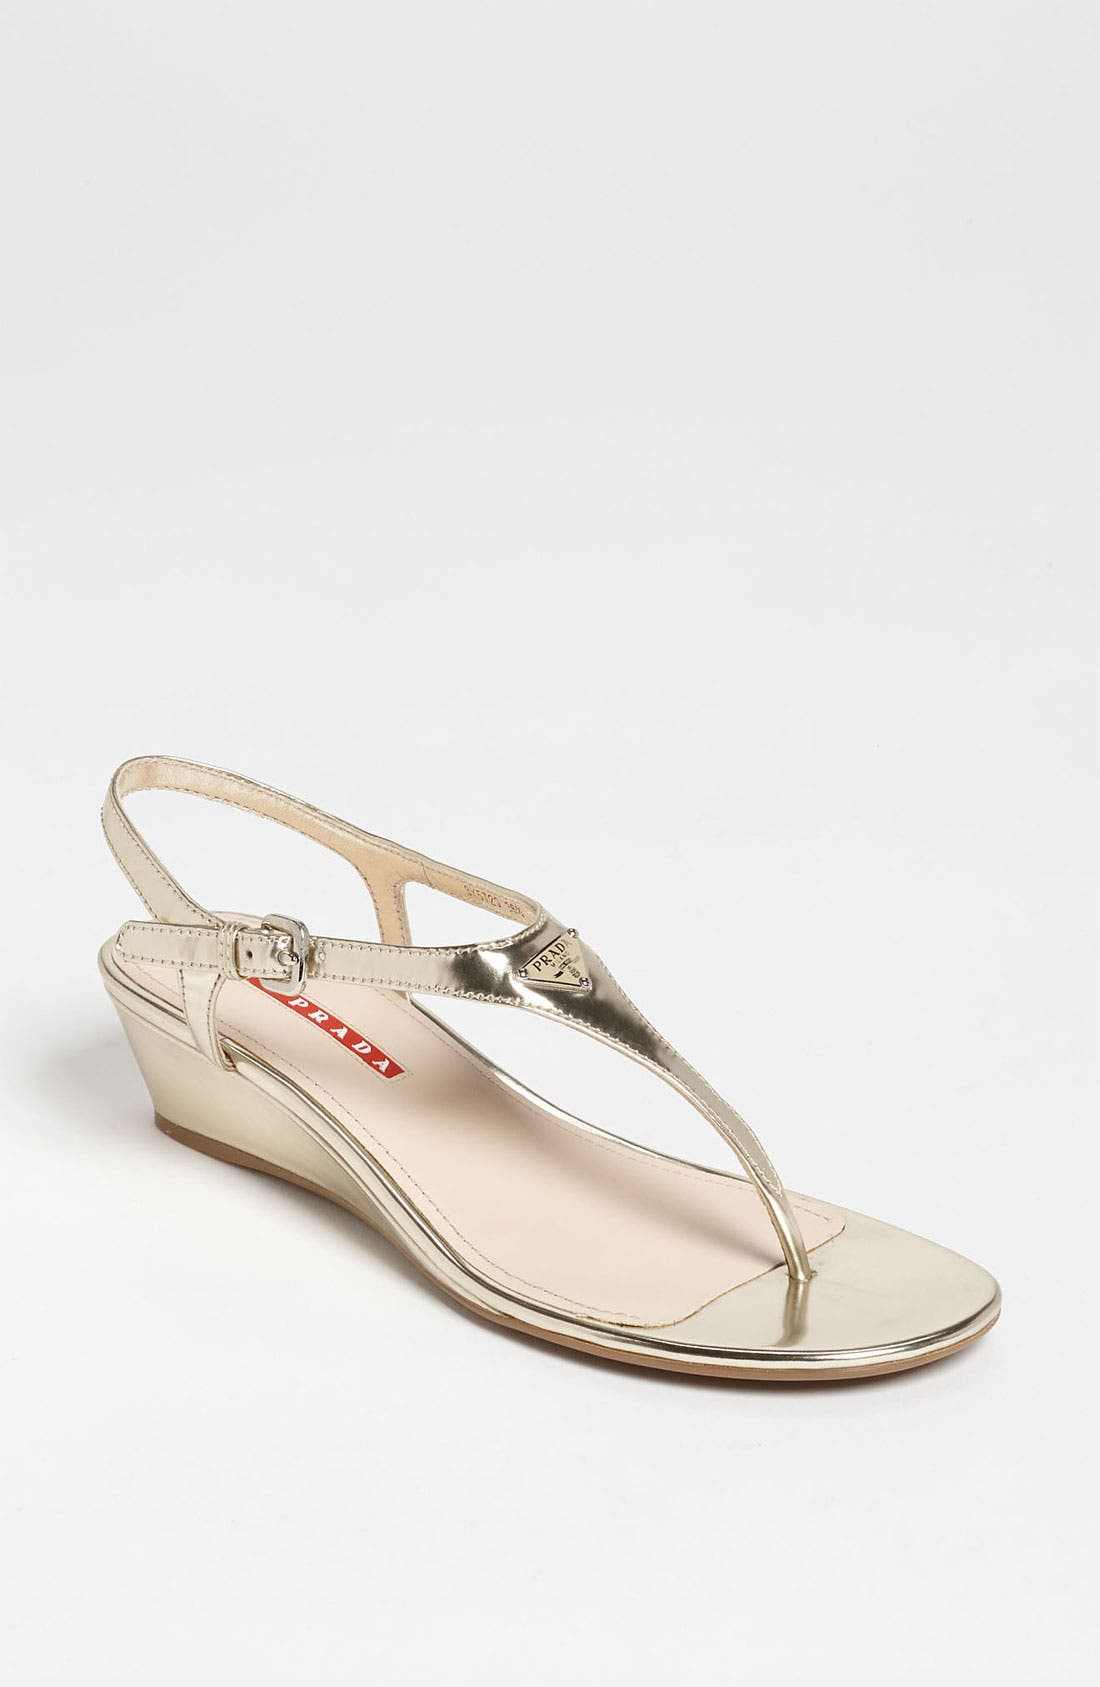 Alternate Image 1 Selected - Prada Logo Wedge Sandal